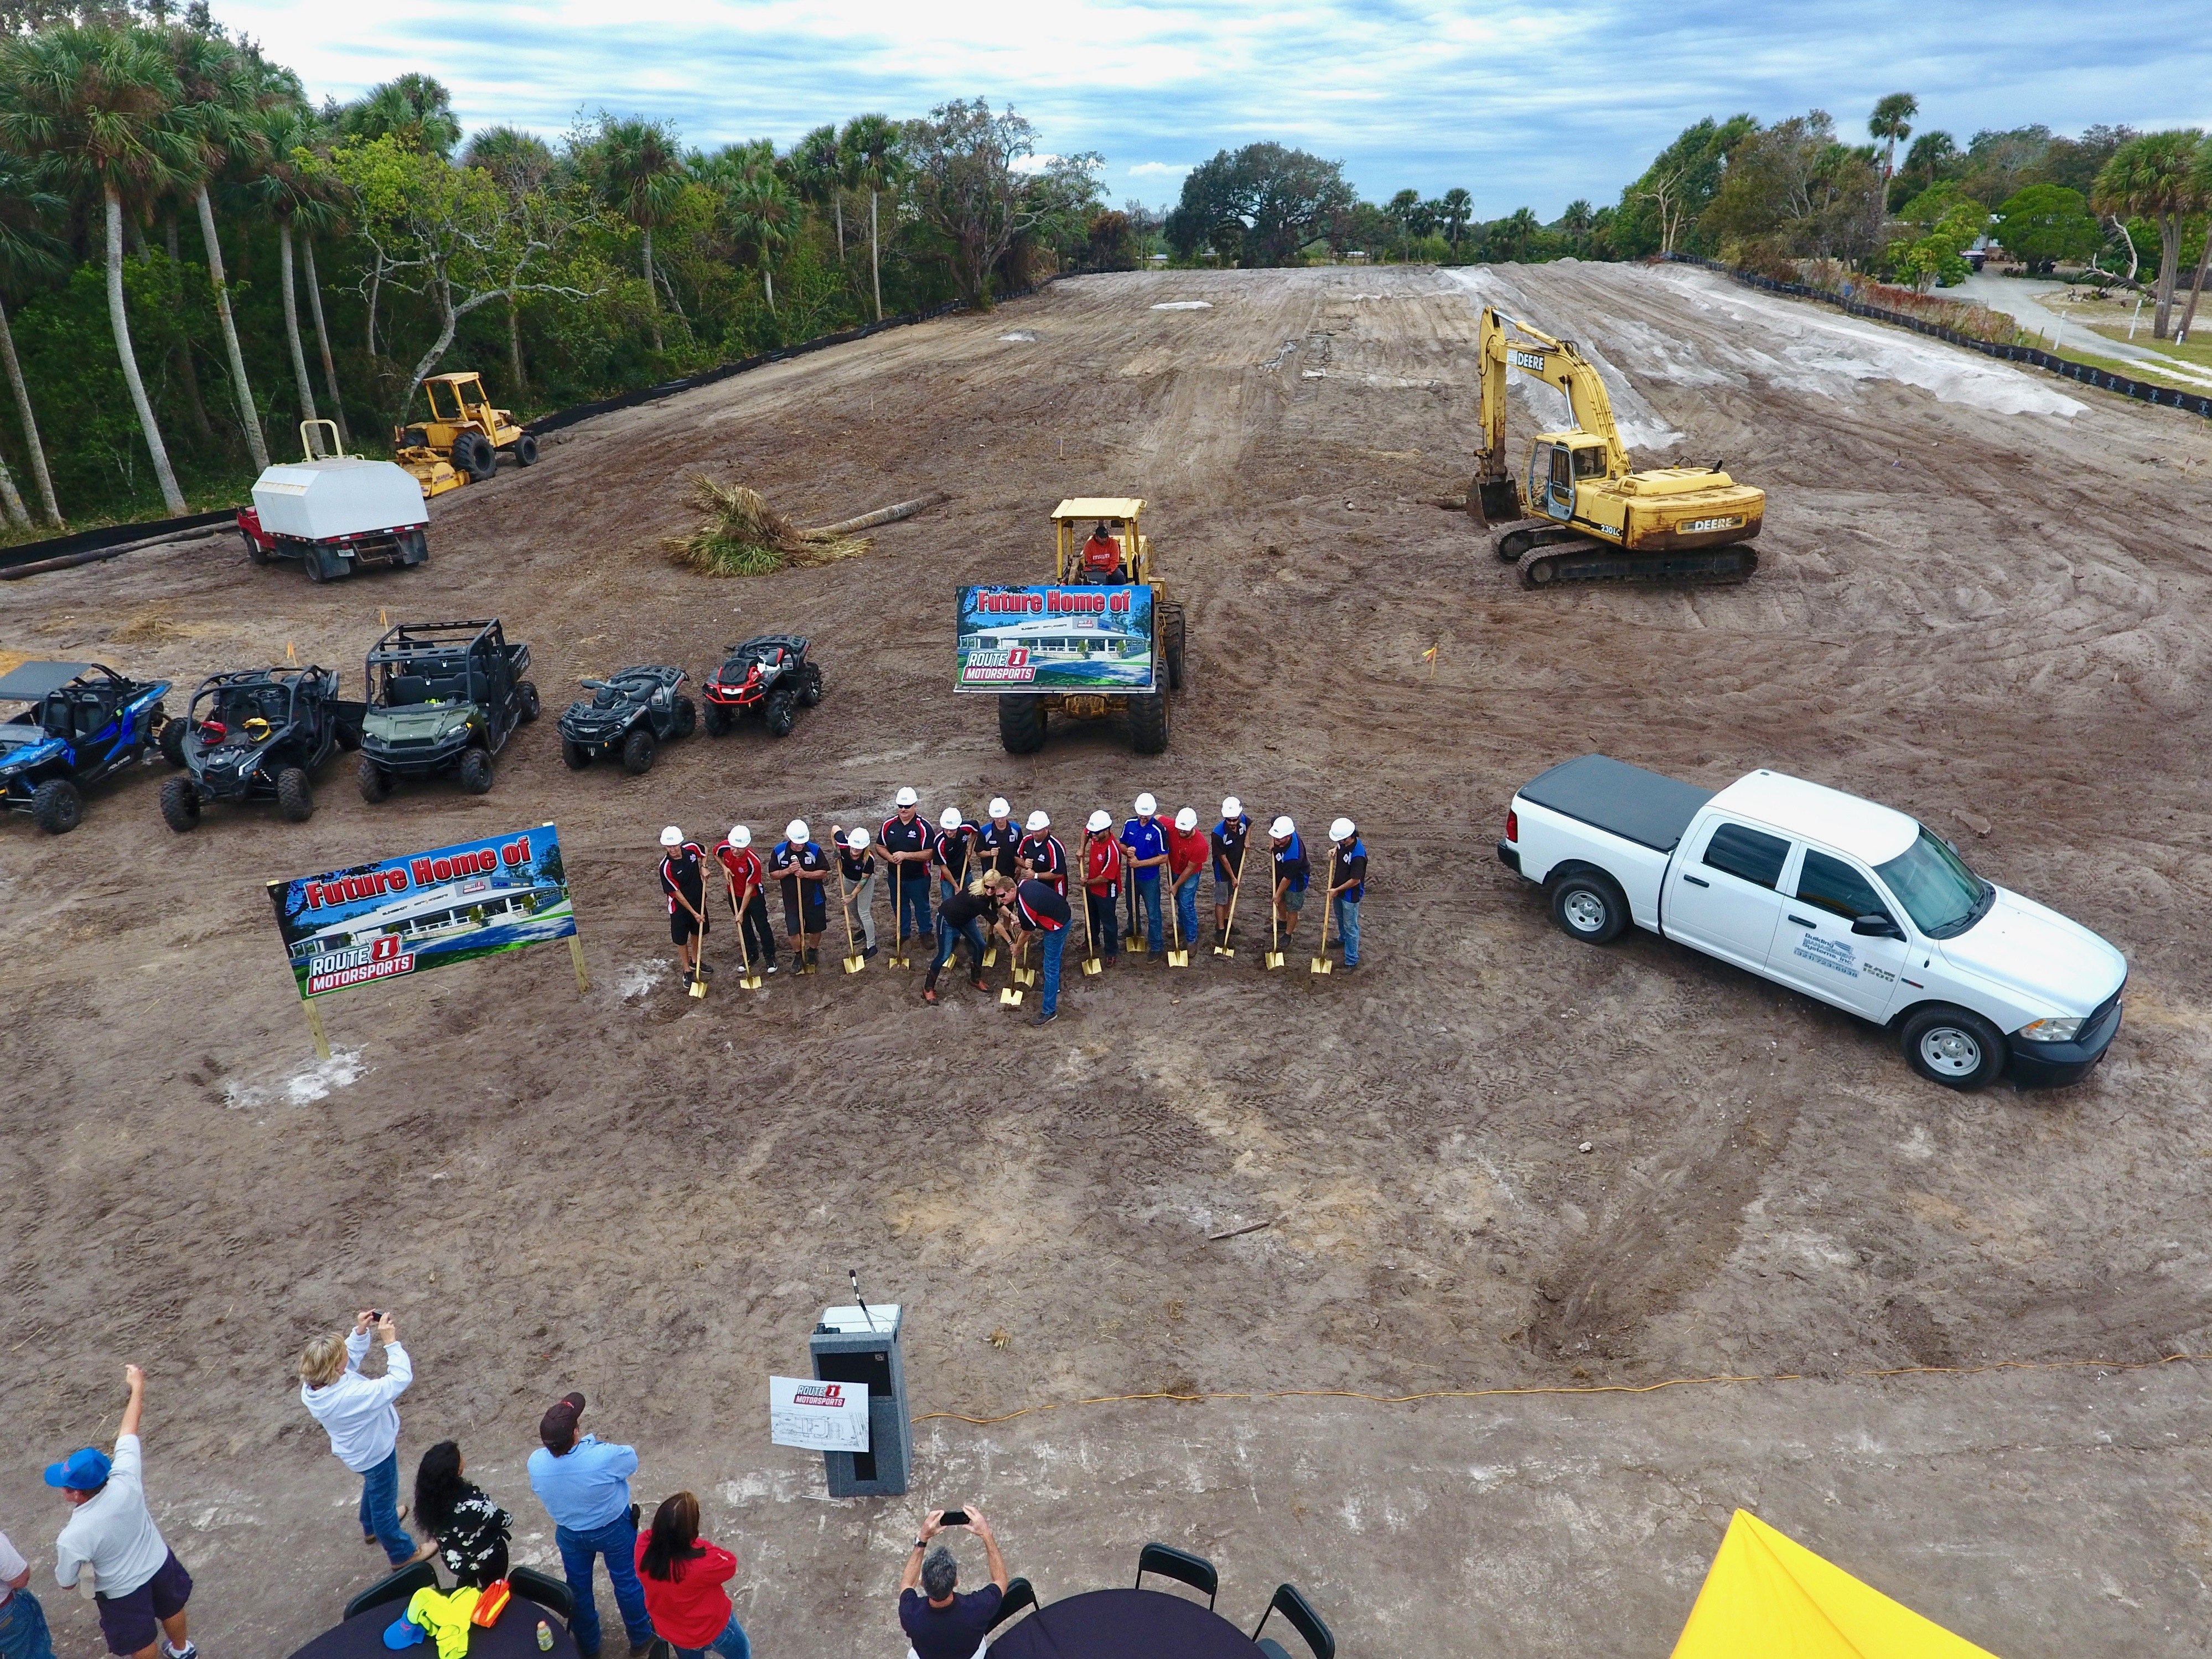 Press Event Coverage: Route 1 Motorsports Groundbreaking Ceremony